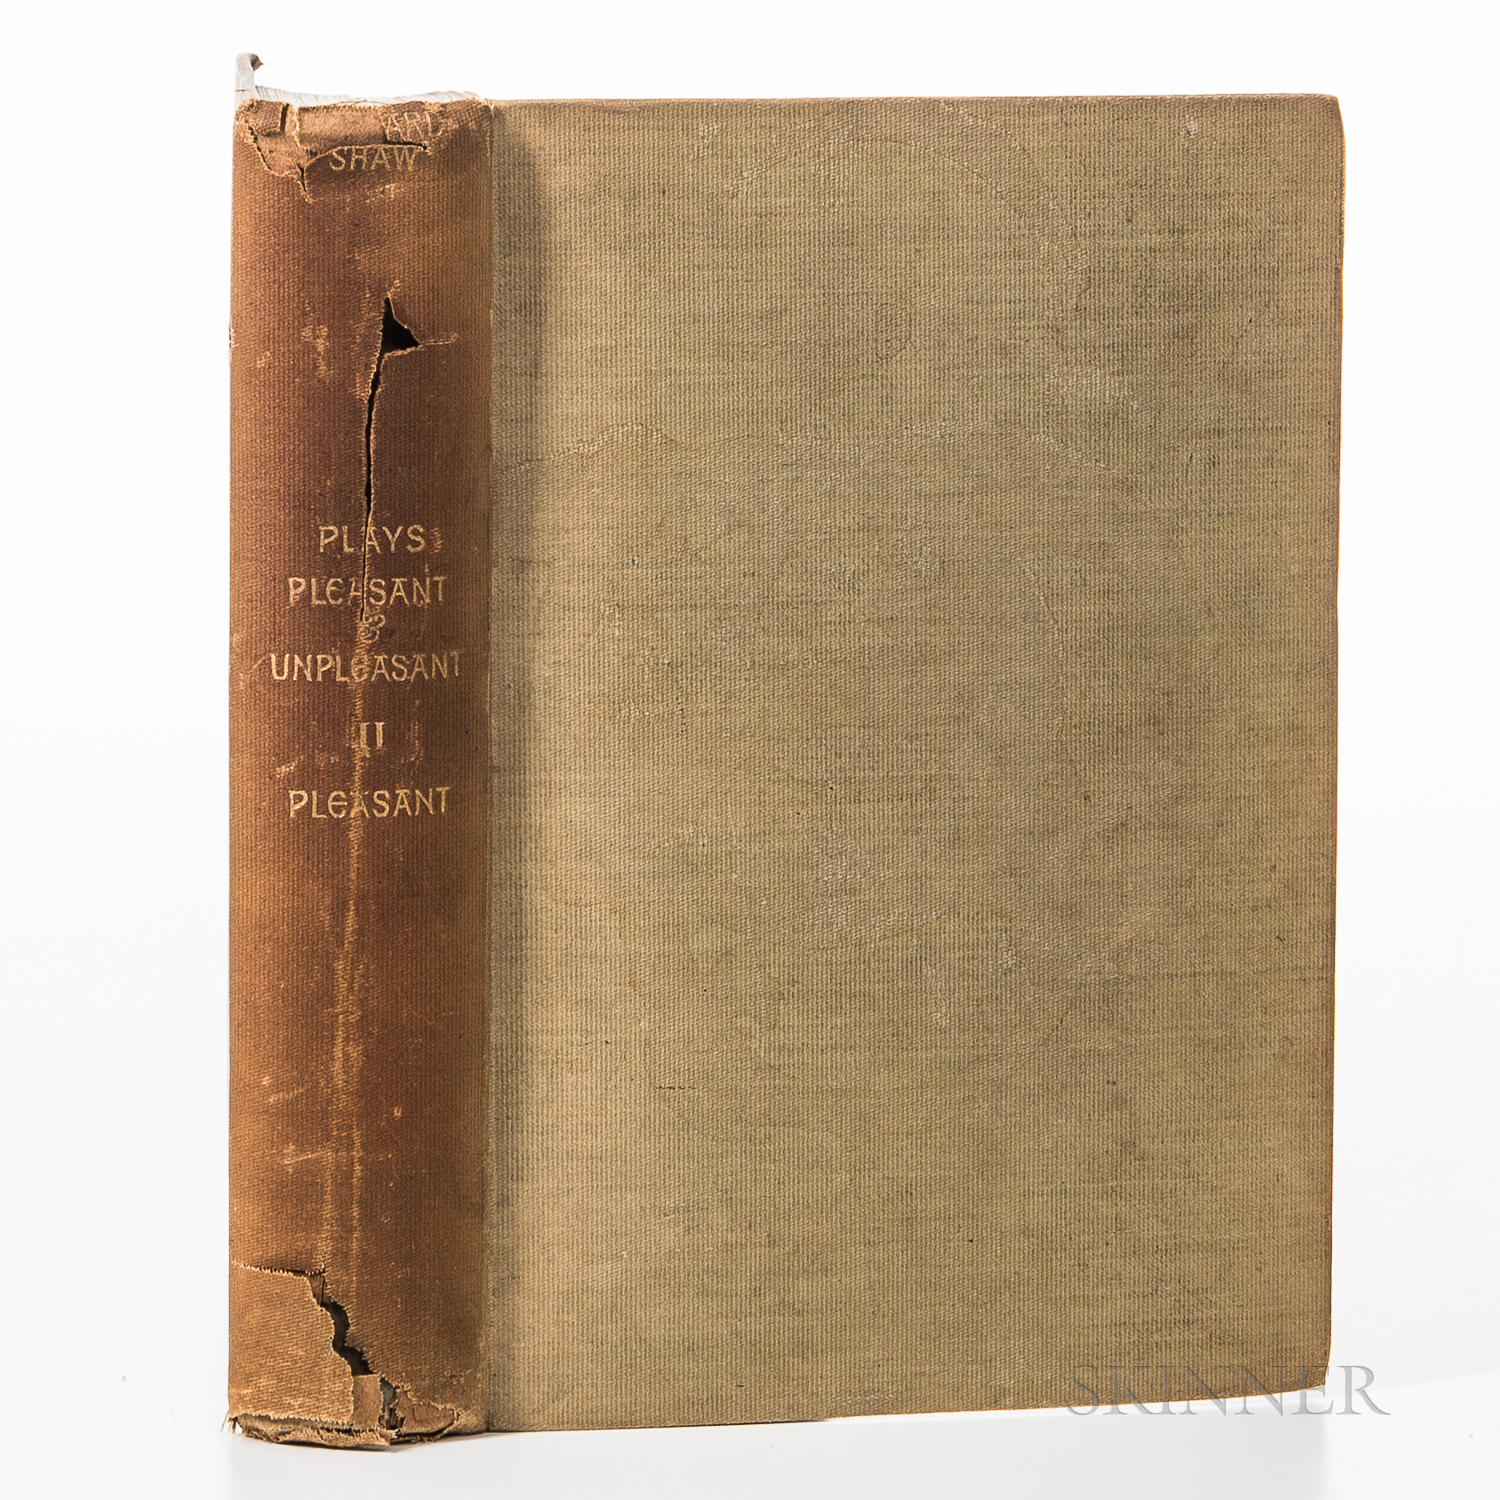 Shaw, Bernard (1856-1950)Plays Pleasant & Unpleasant: The Second Volume, containing the Four Pleasant Plays.